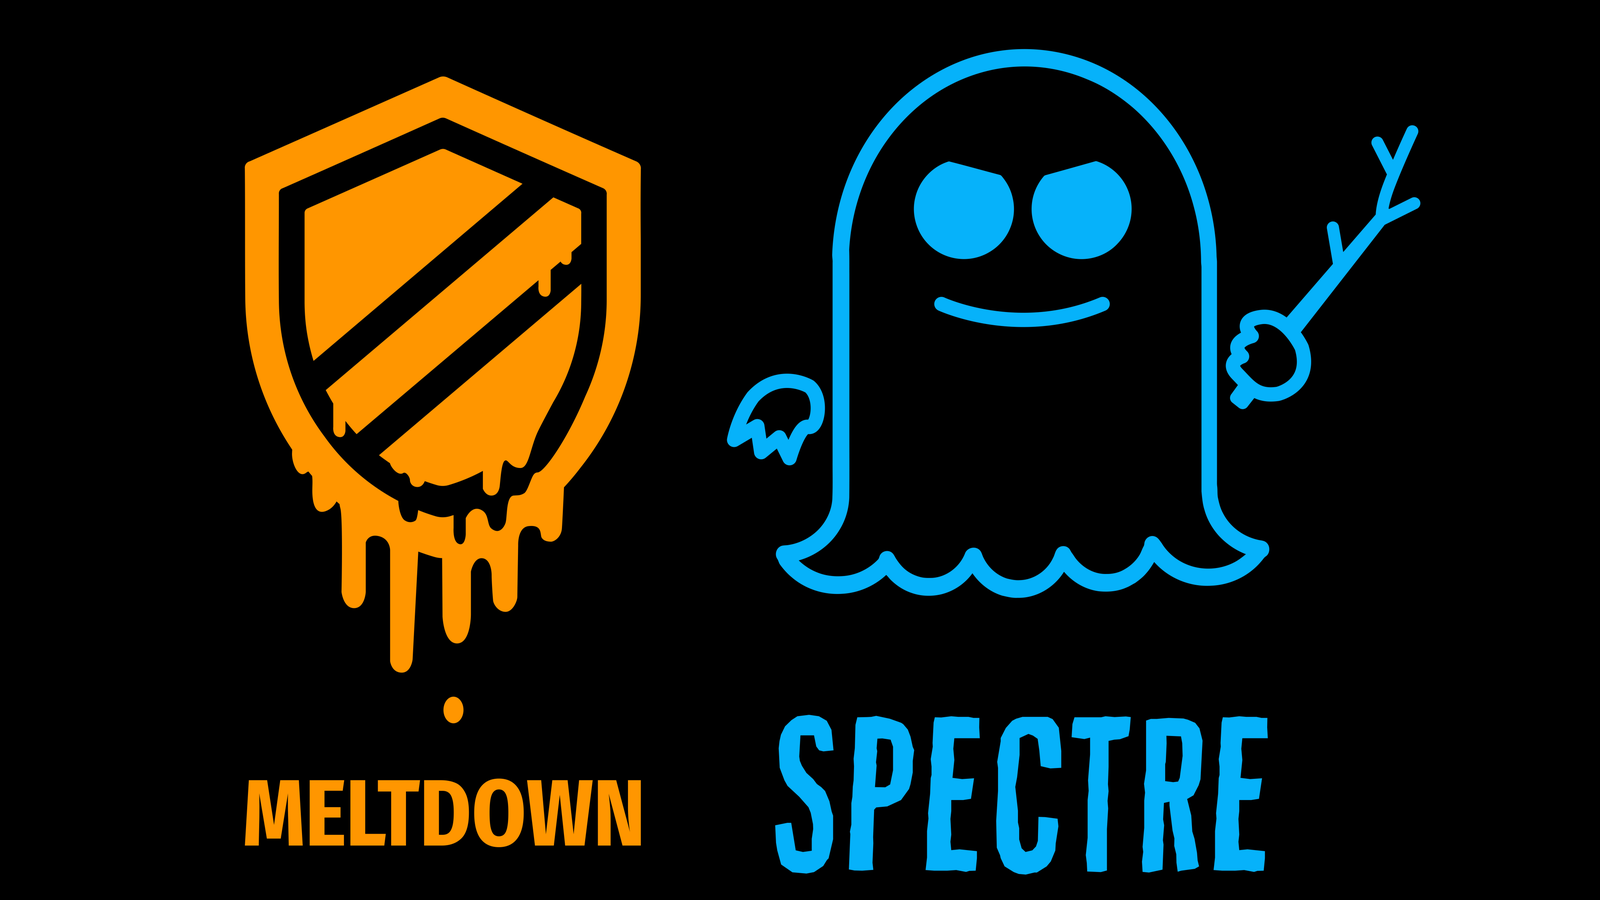 What We Know So Far About Meltdown And Spectre The Devastating Vulnerabilities In Modern CPUs Updated